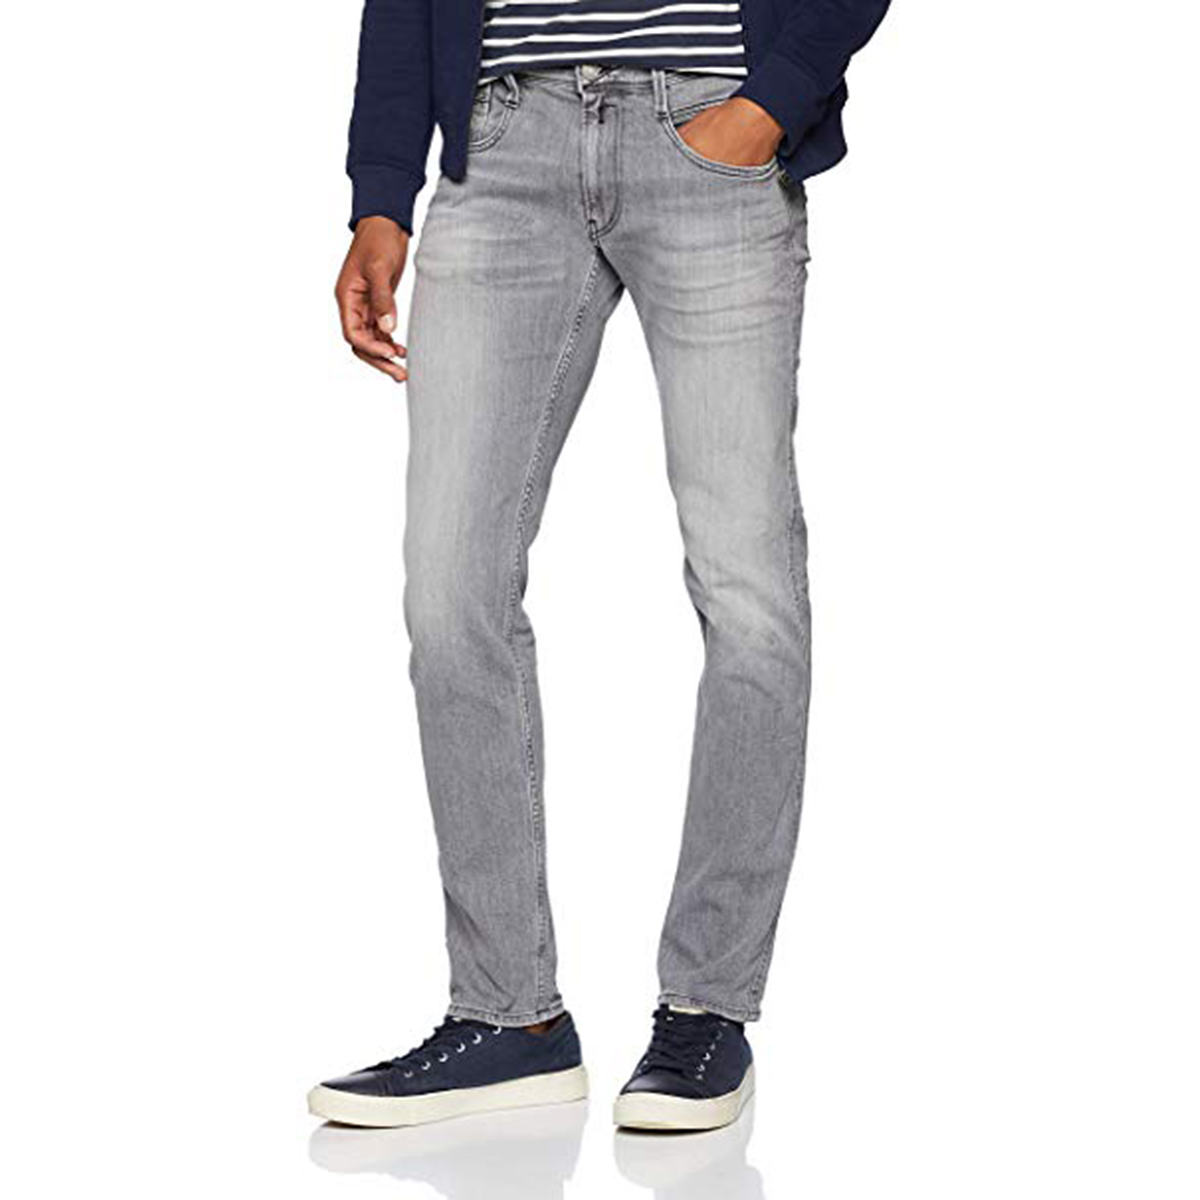 140f1e5e51a Sentinel Thumbnail 1. Sentinel Replay Grey Laserblast Edition Slim Fit Jean  - M914Y-000-573-209-